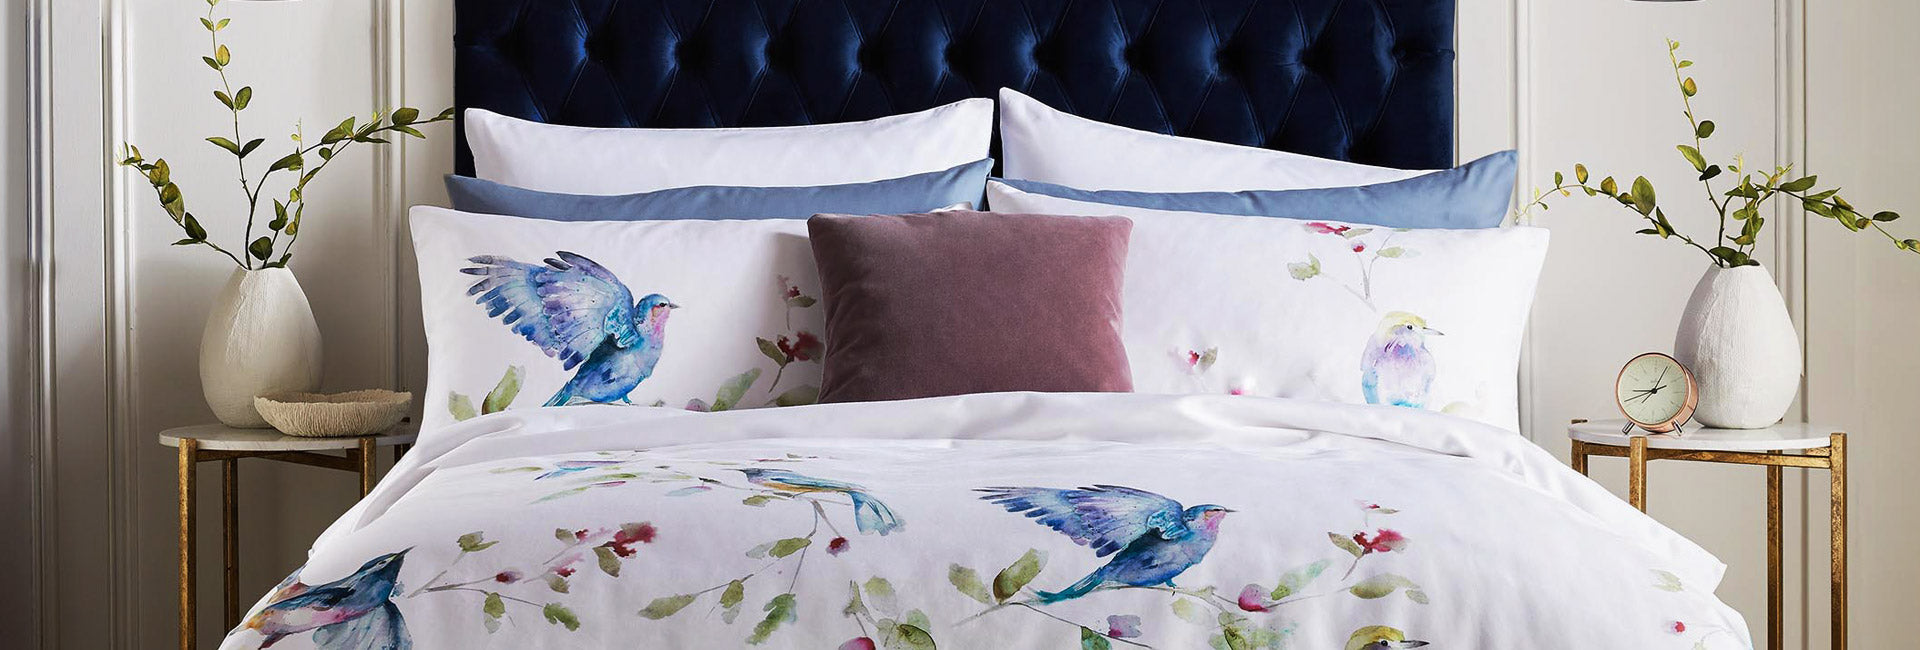 Brand new Voyage Maison bedding at Dotmaison